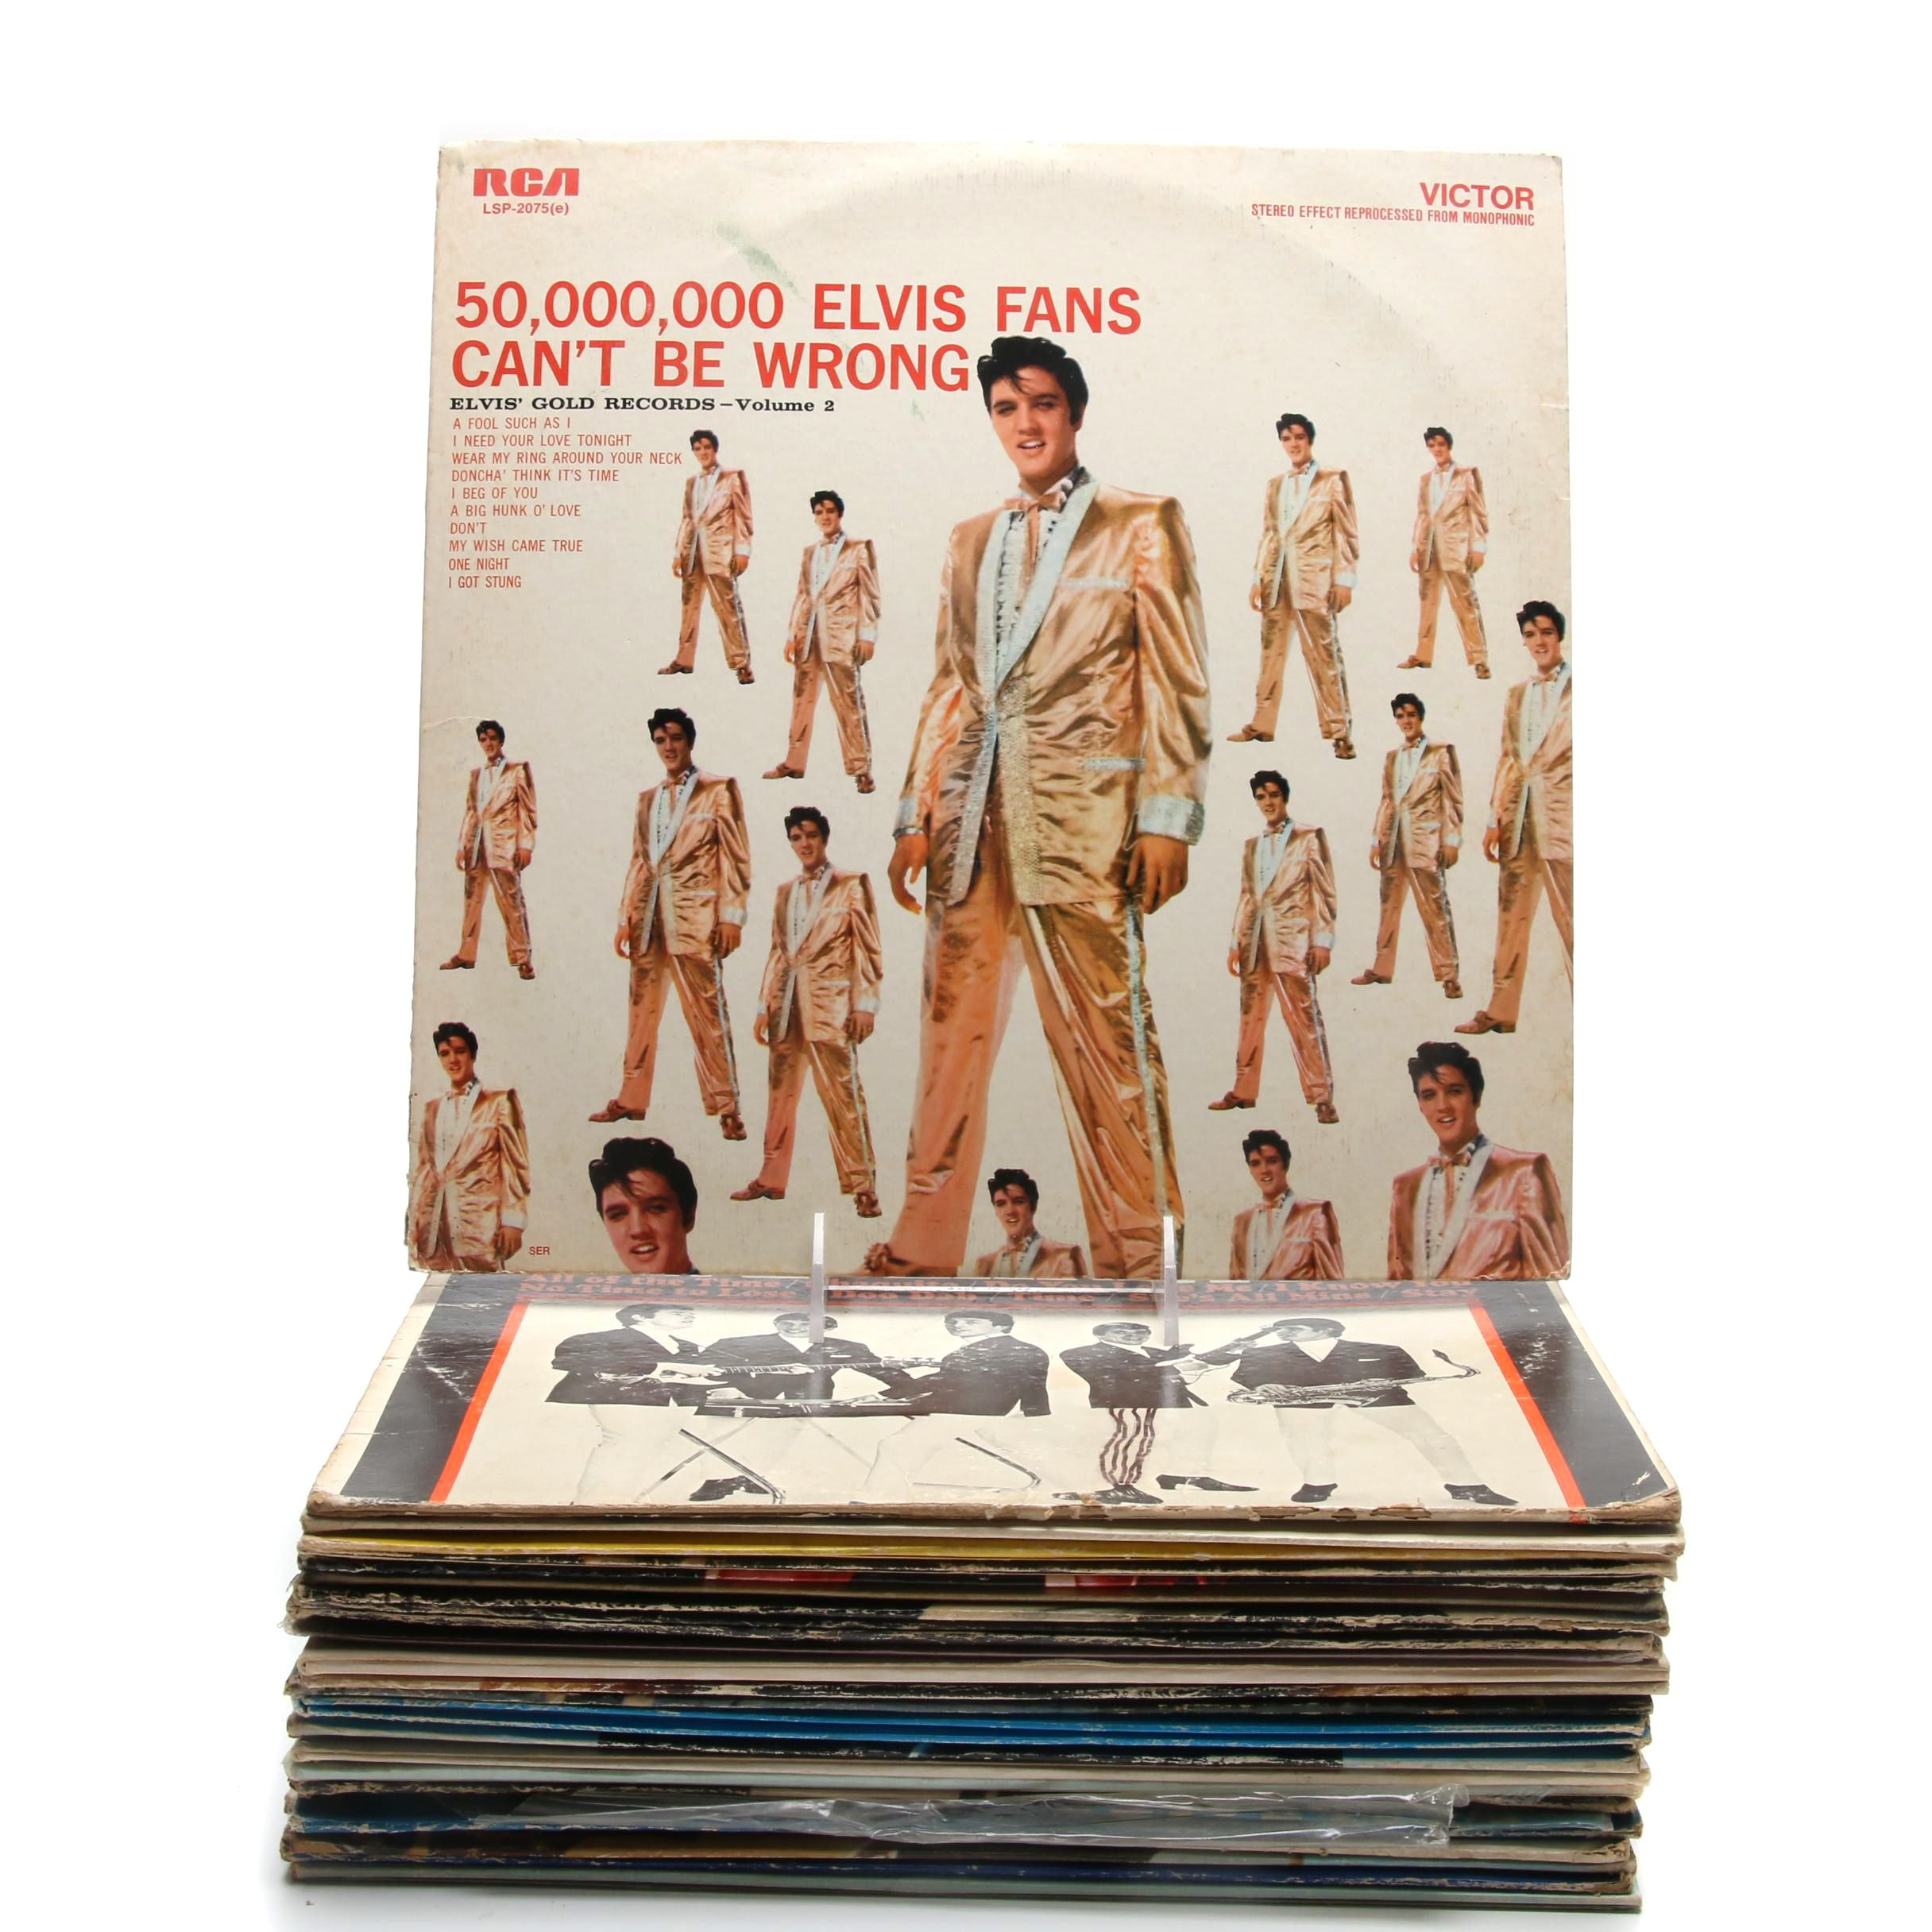 1950s-1960s Elvis Presley Records and More